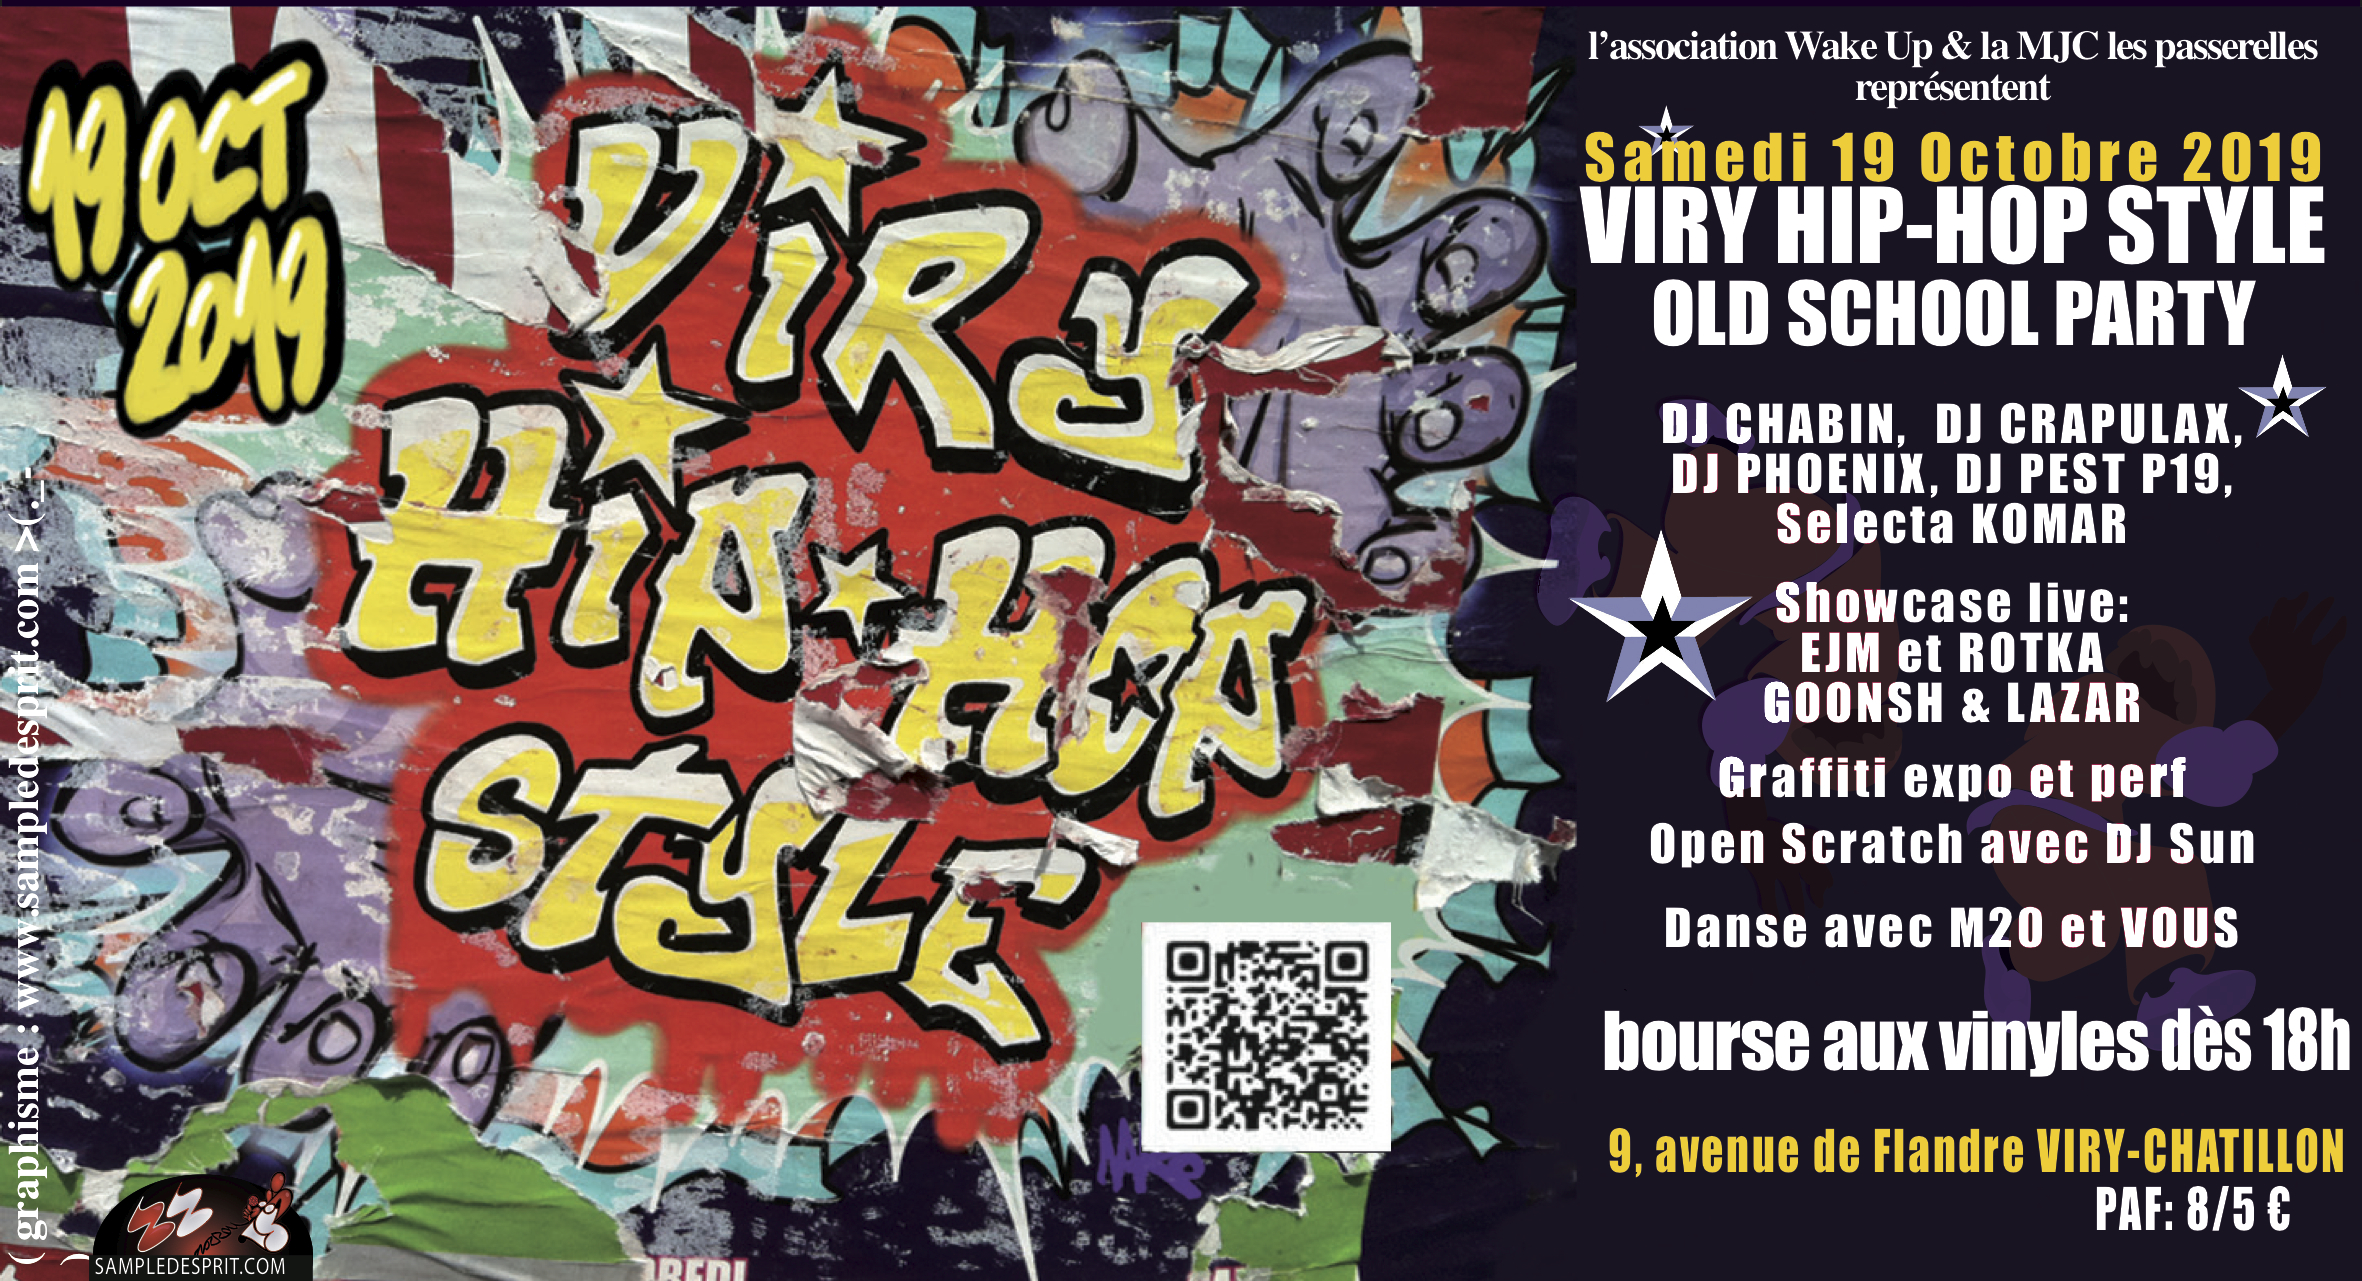 VIRY HIP-HOP STYLE OLD PARTY